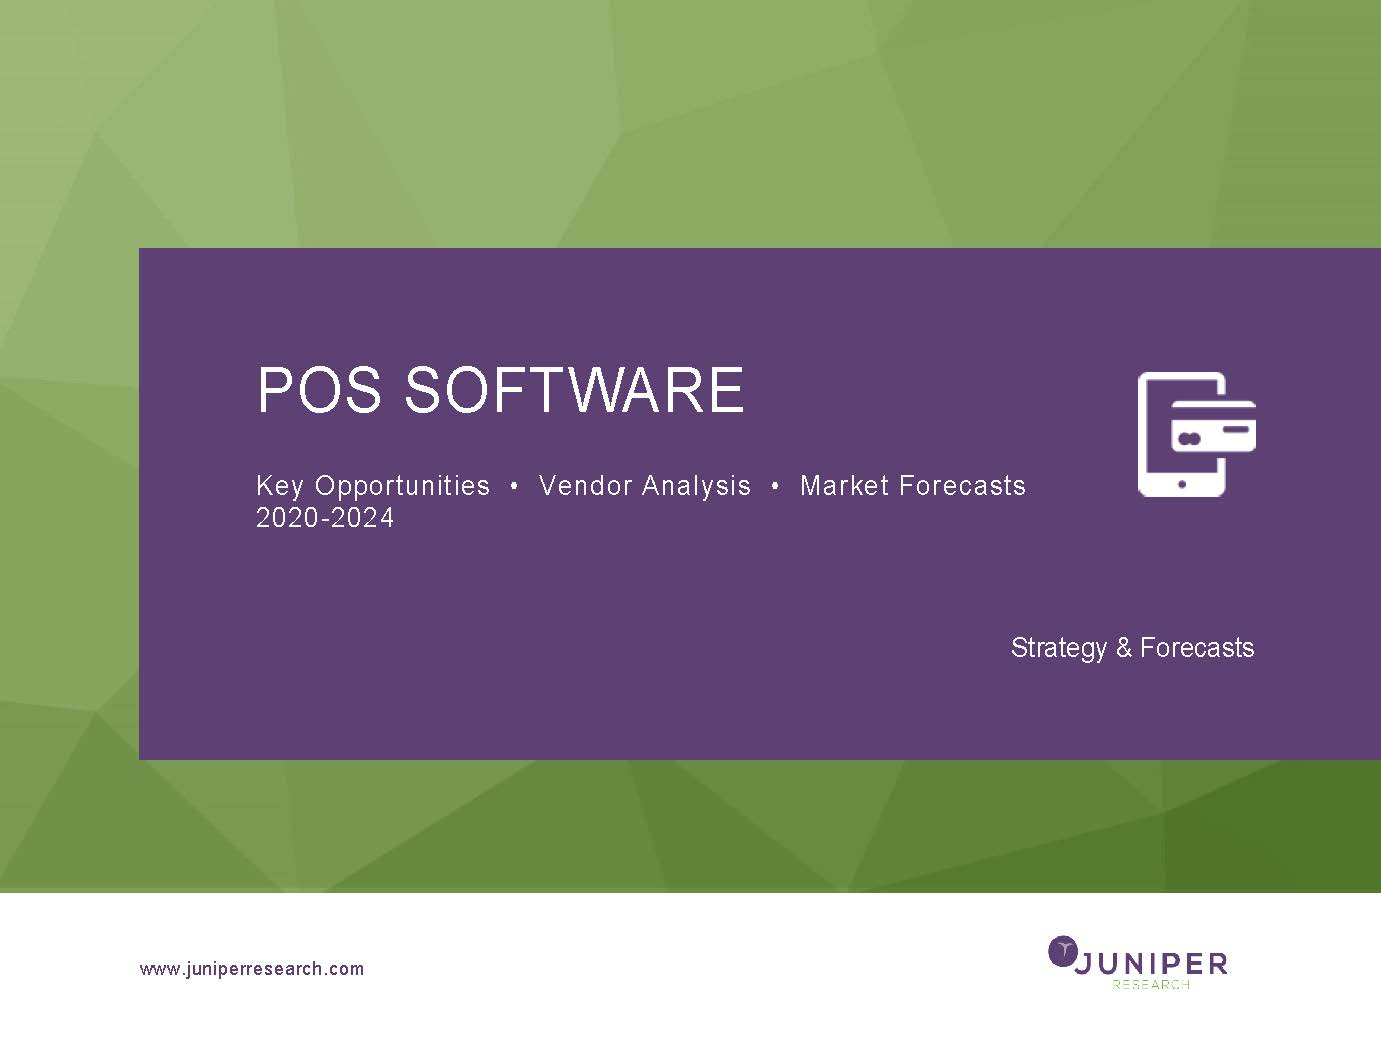 POS Software: Key Opportunities, Vendor Analysis & Market Forecasts 2020-2024